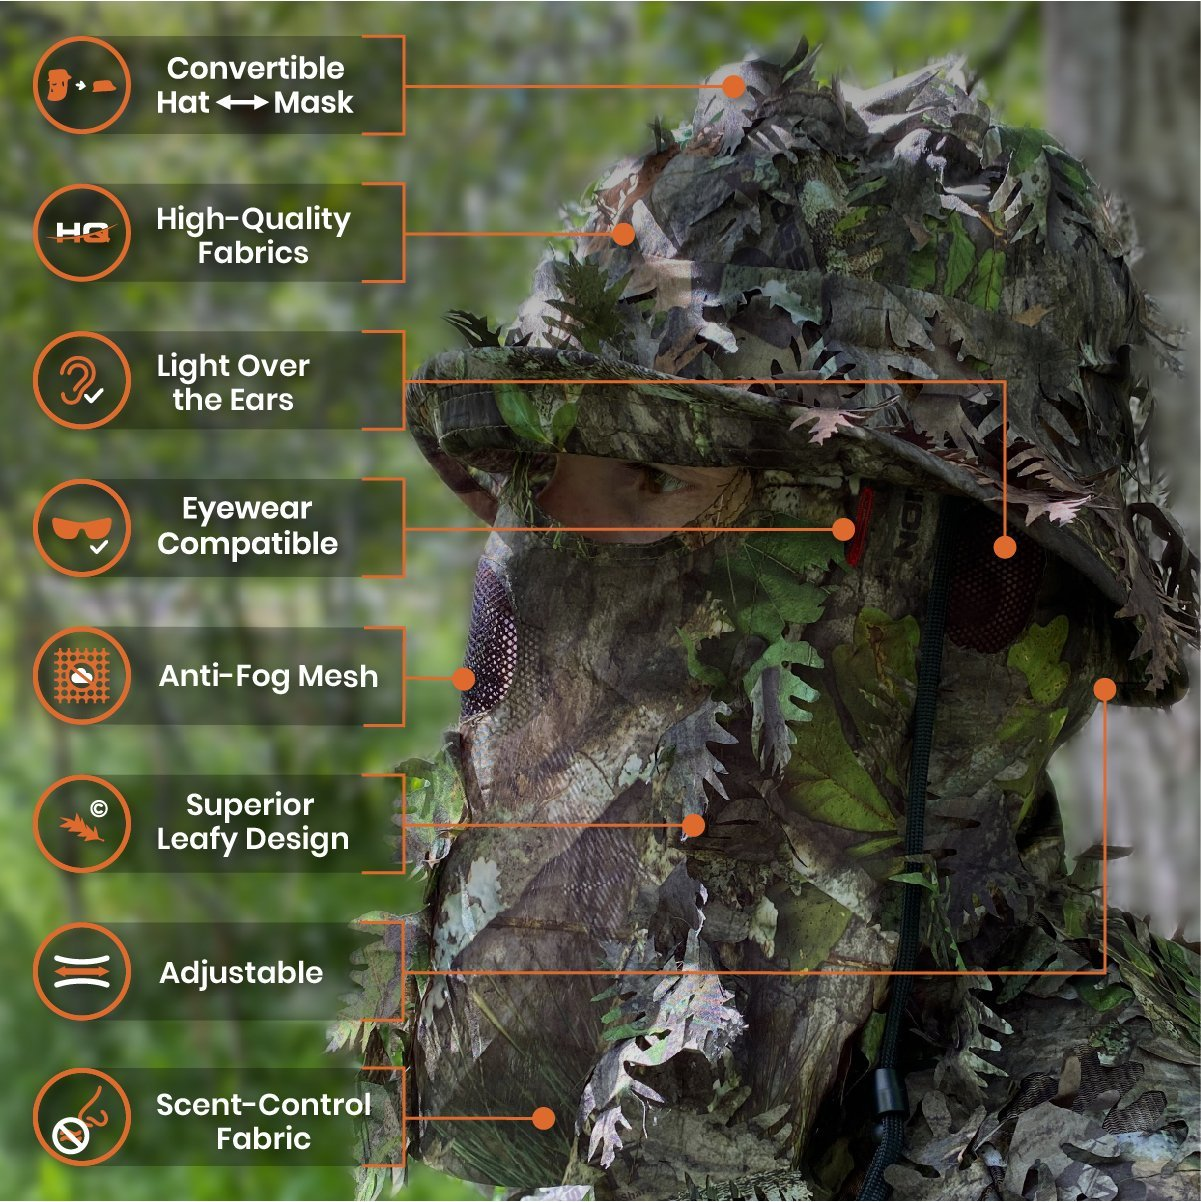 3D Leafy Camo Bucket Hat with Built-in Leafy Camo Face Mask